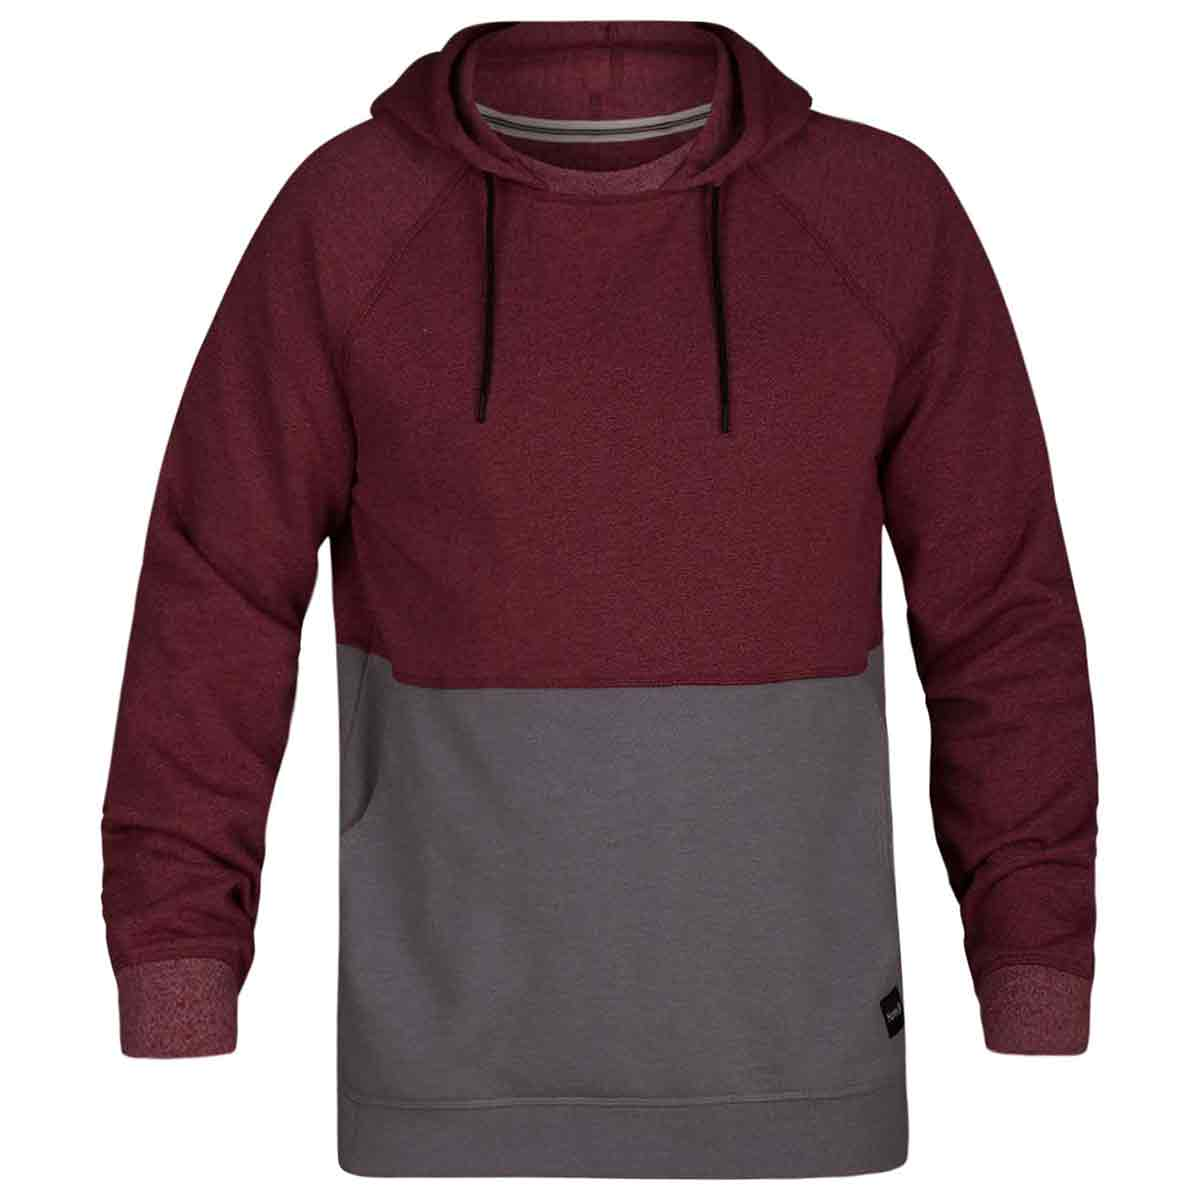 Hurley Guys' Crone Blocked Pullover Hoodie - Red, L